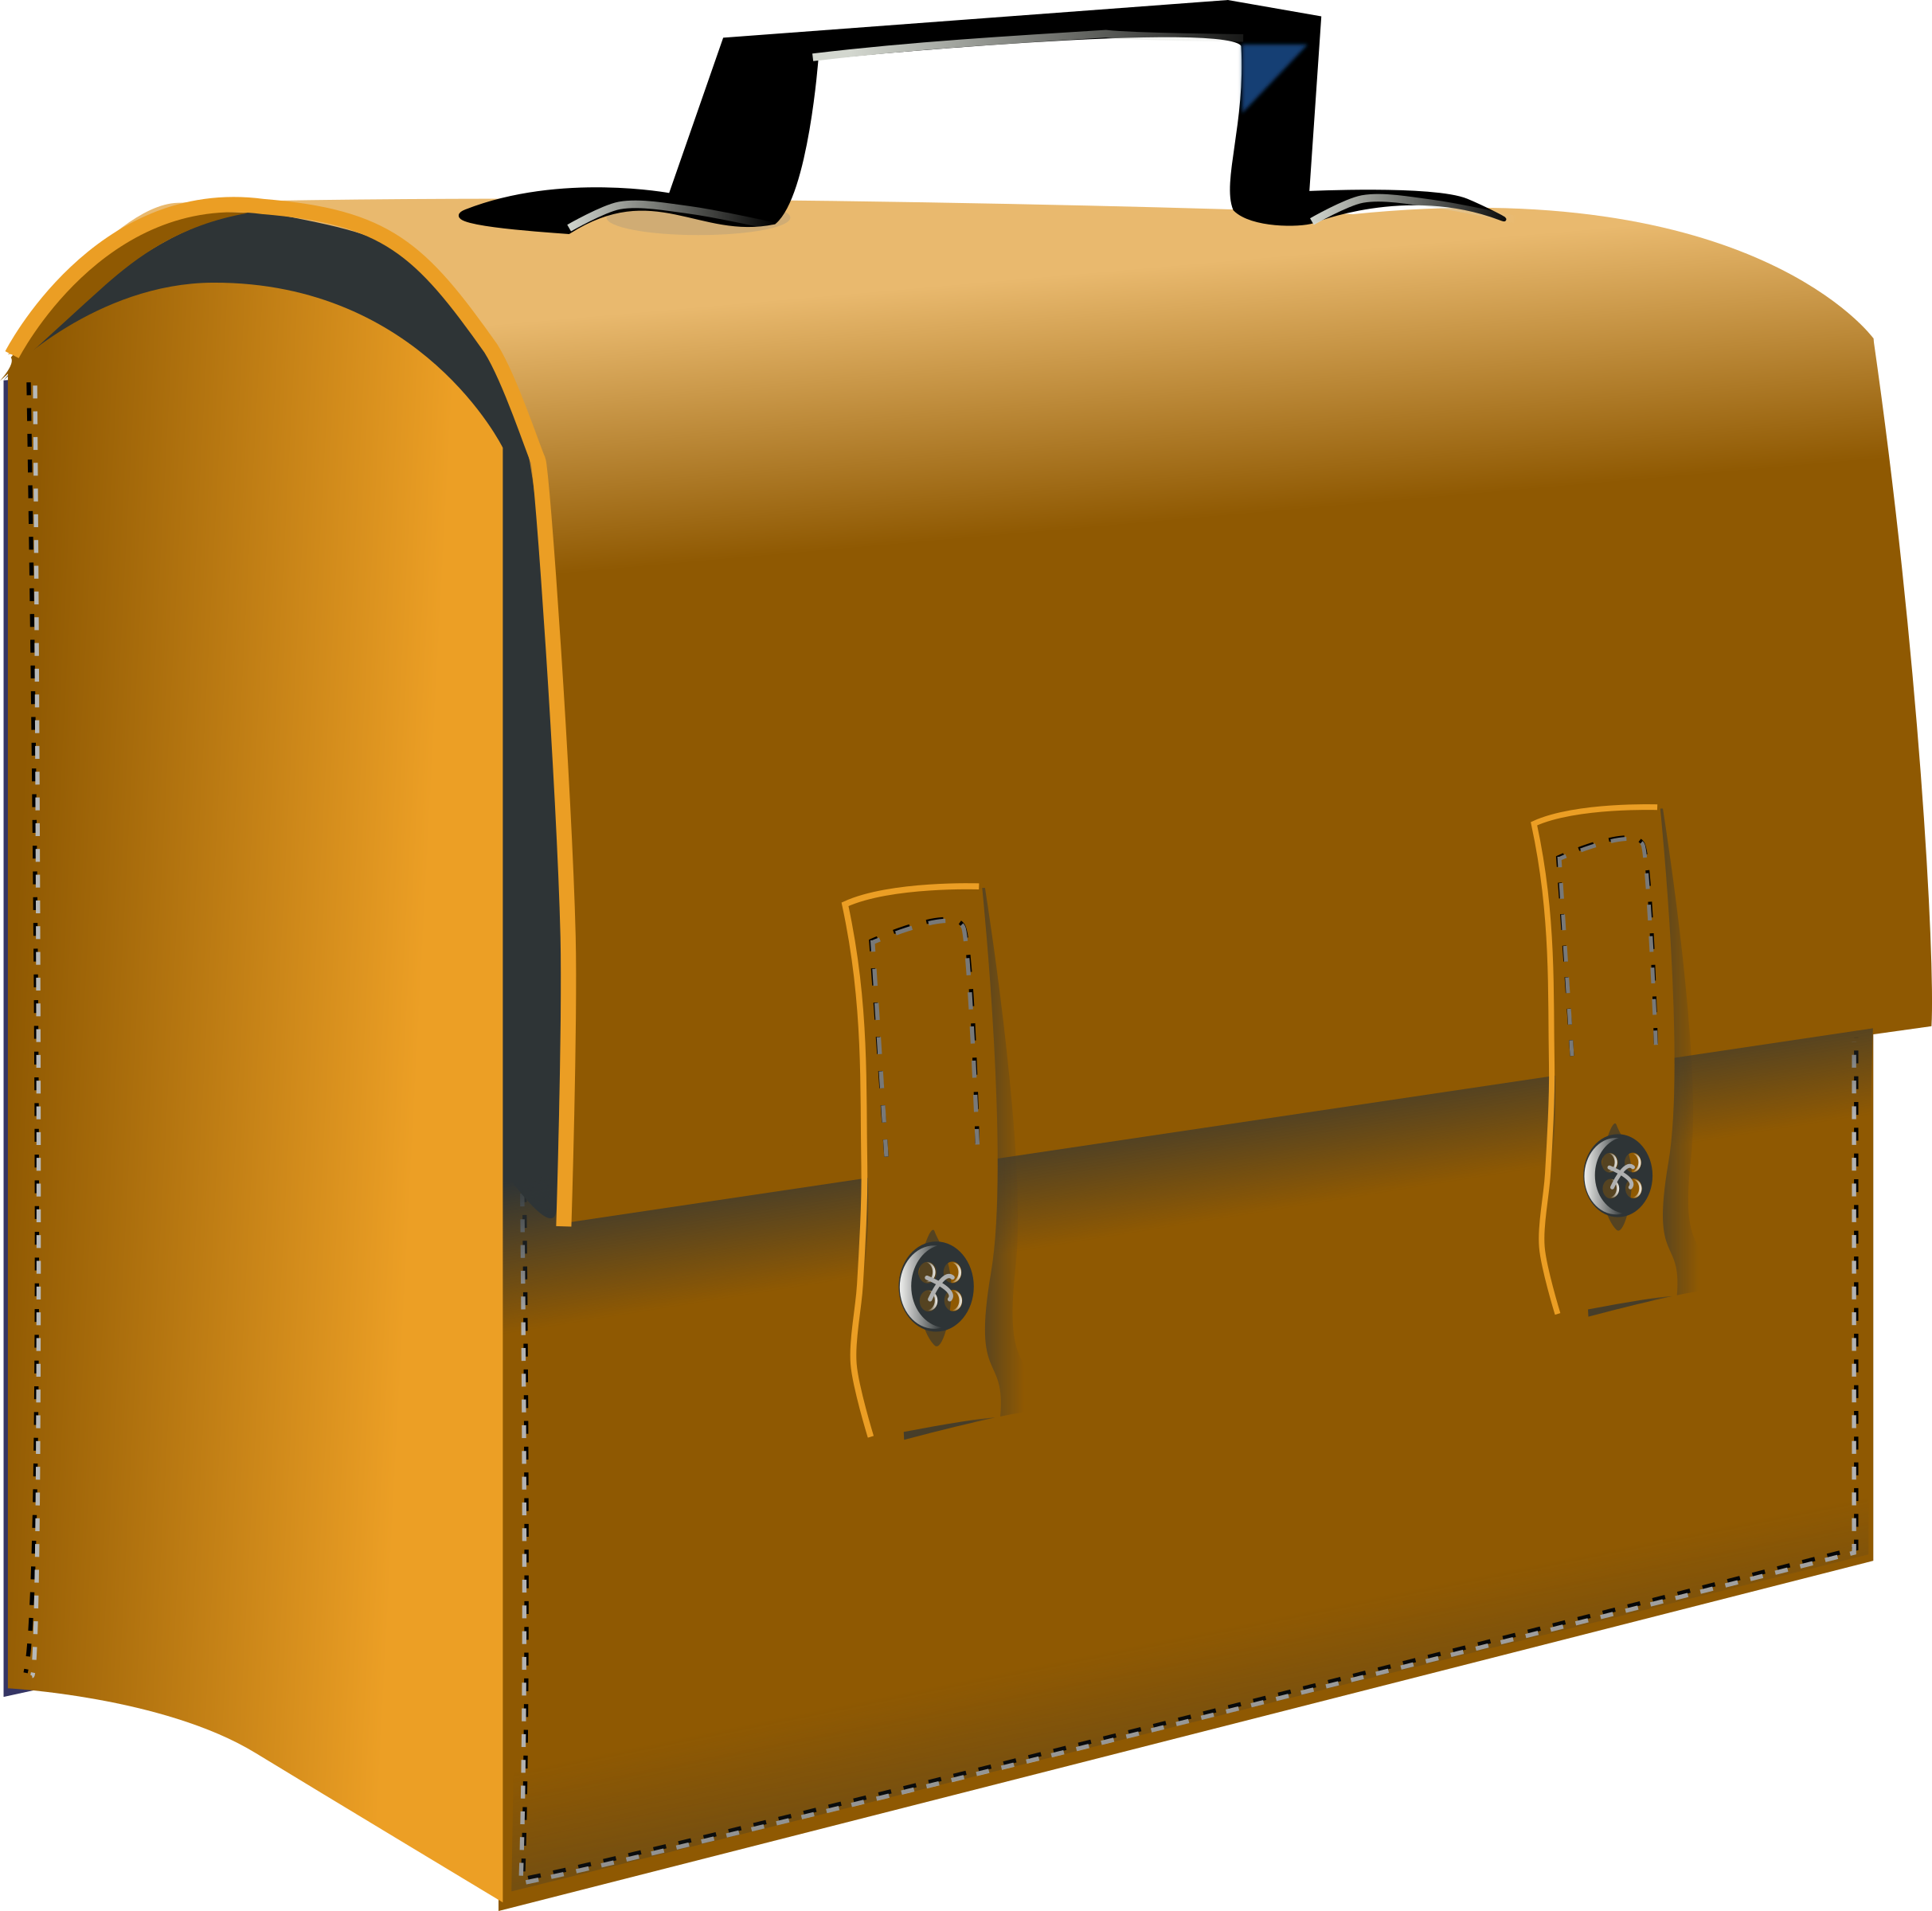 Office clipart suitcase Clipart suitcase clipart Animated collection